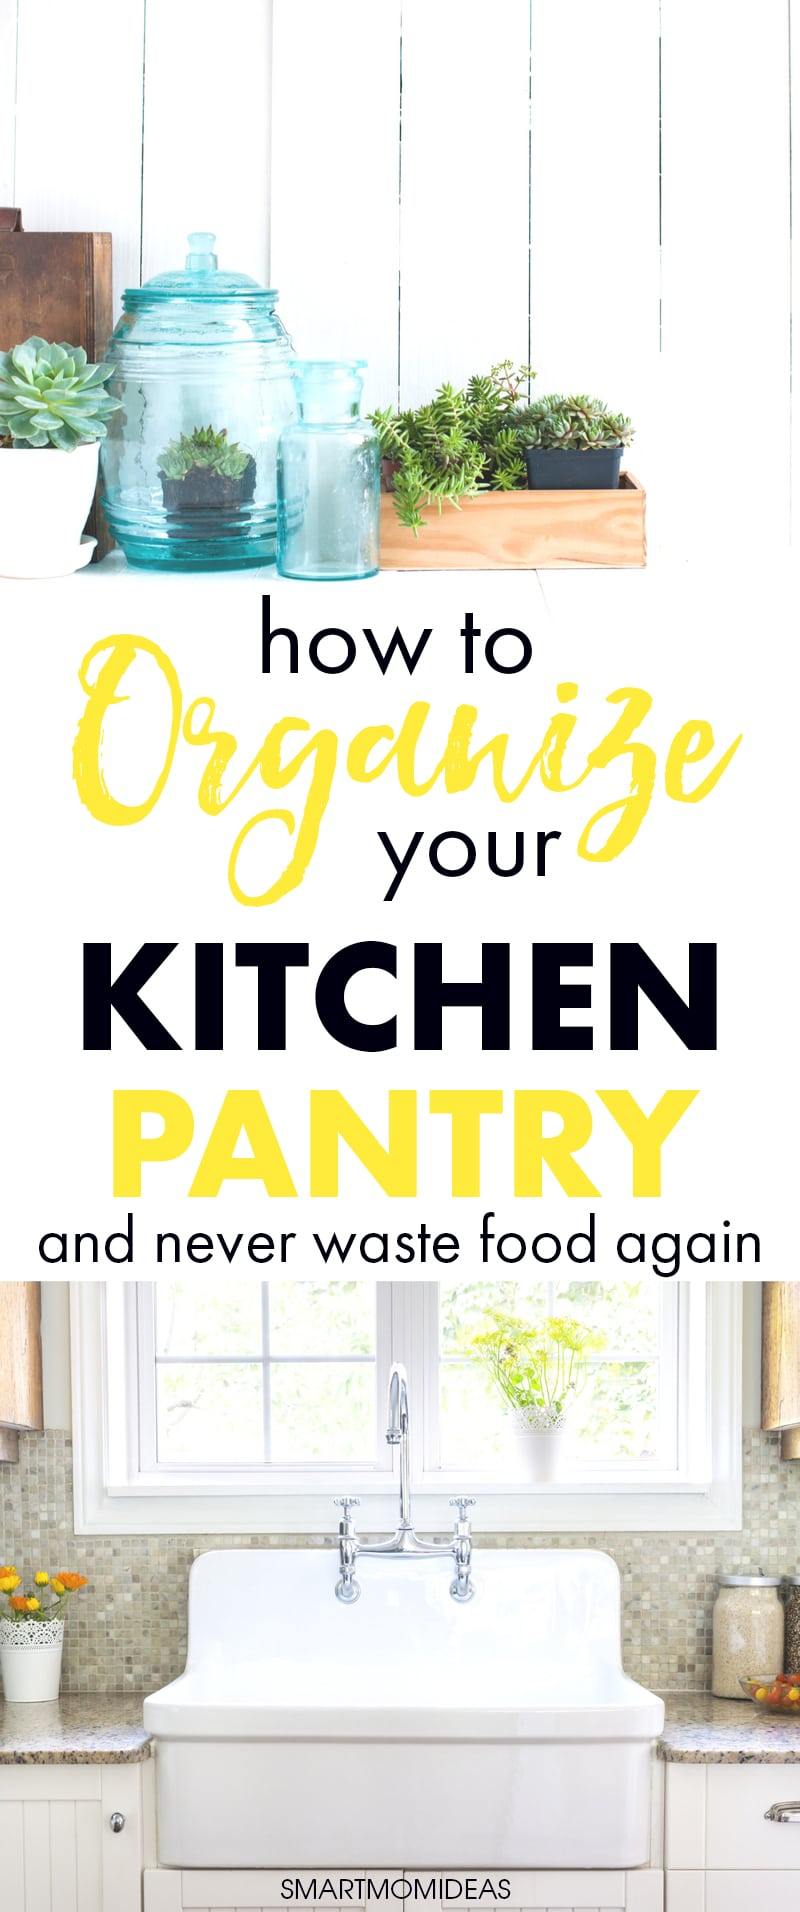 How to Organize Your Kitchen Pantry and Never Waste Food Again ...